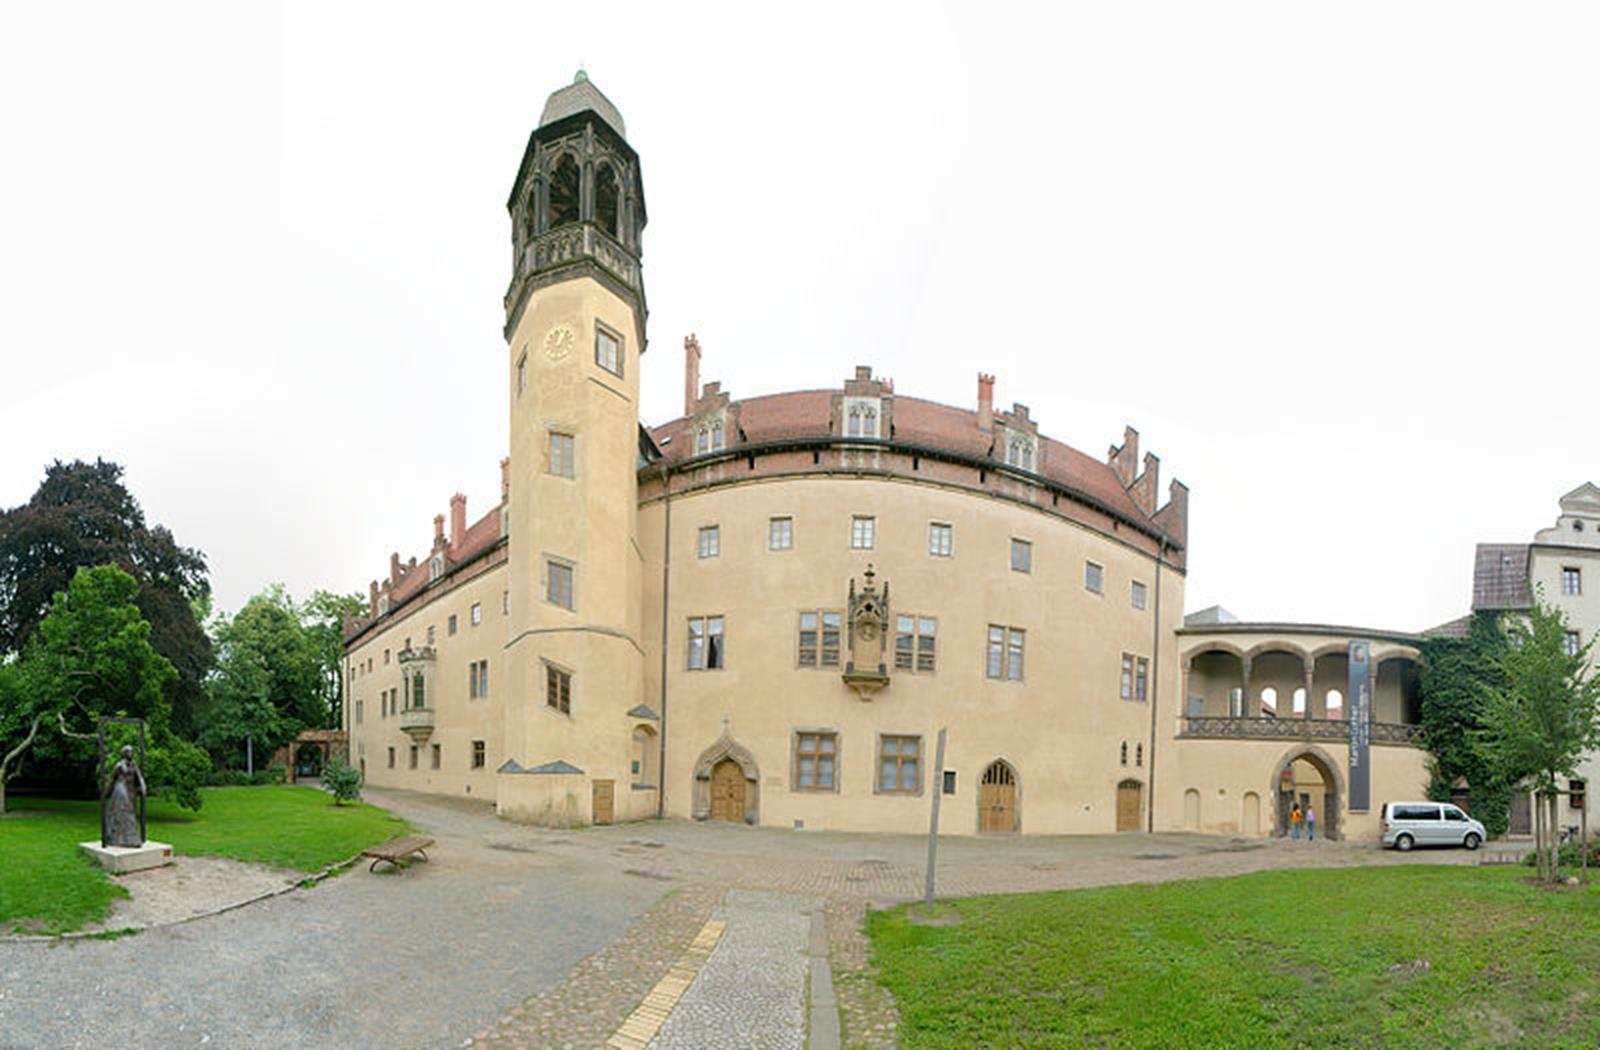 The Lutherhaus in Wittenburg